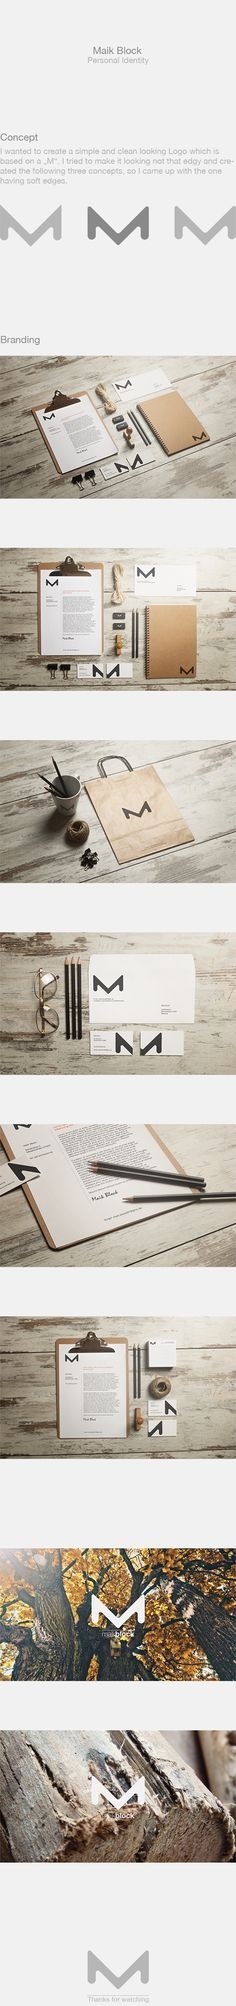 Personal Identity by Maik Block, via Behance